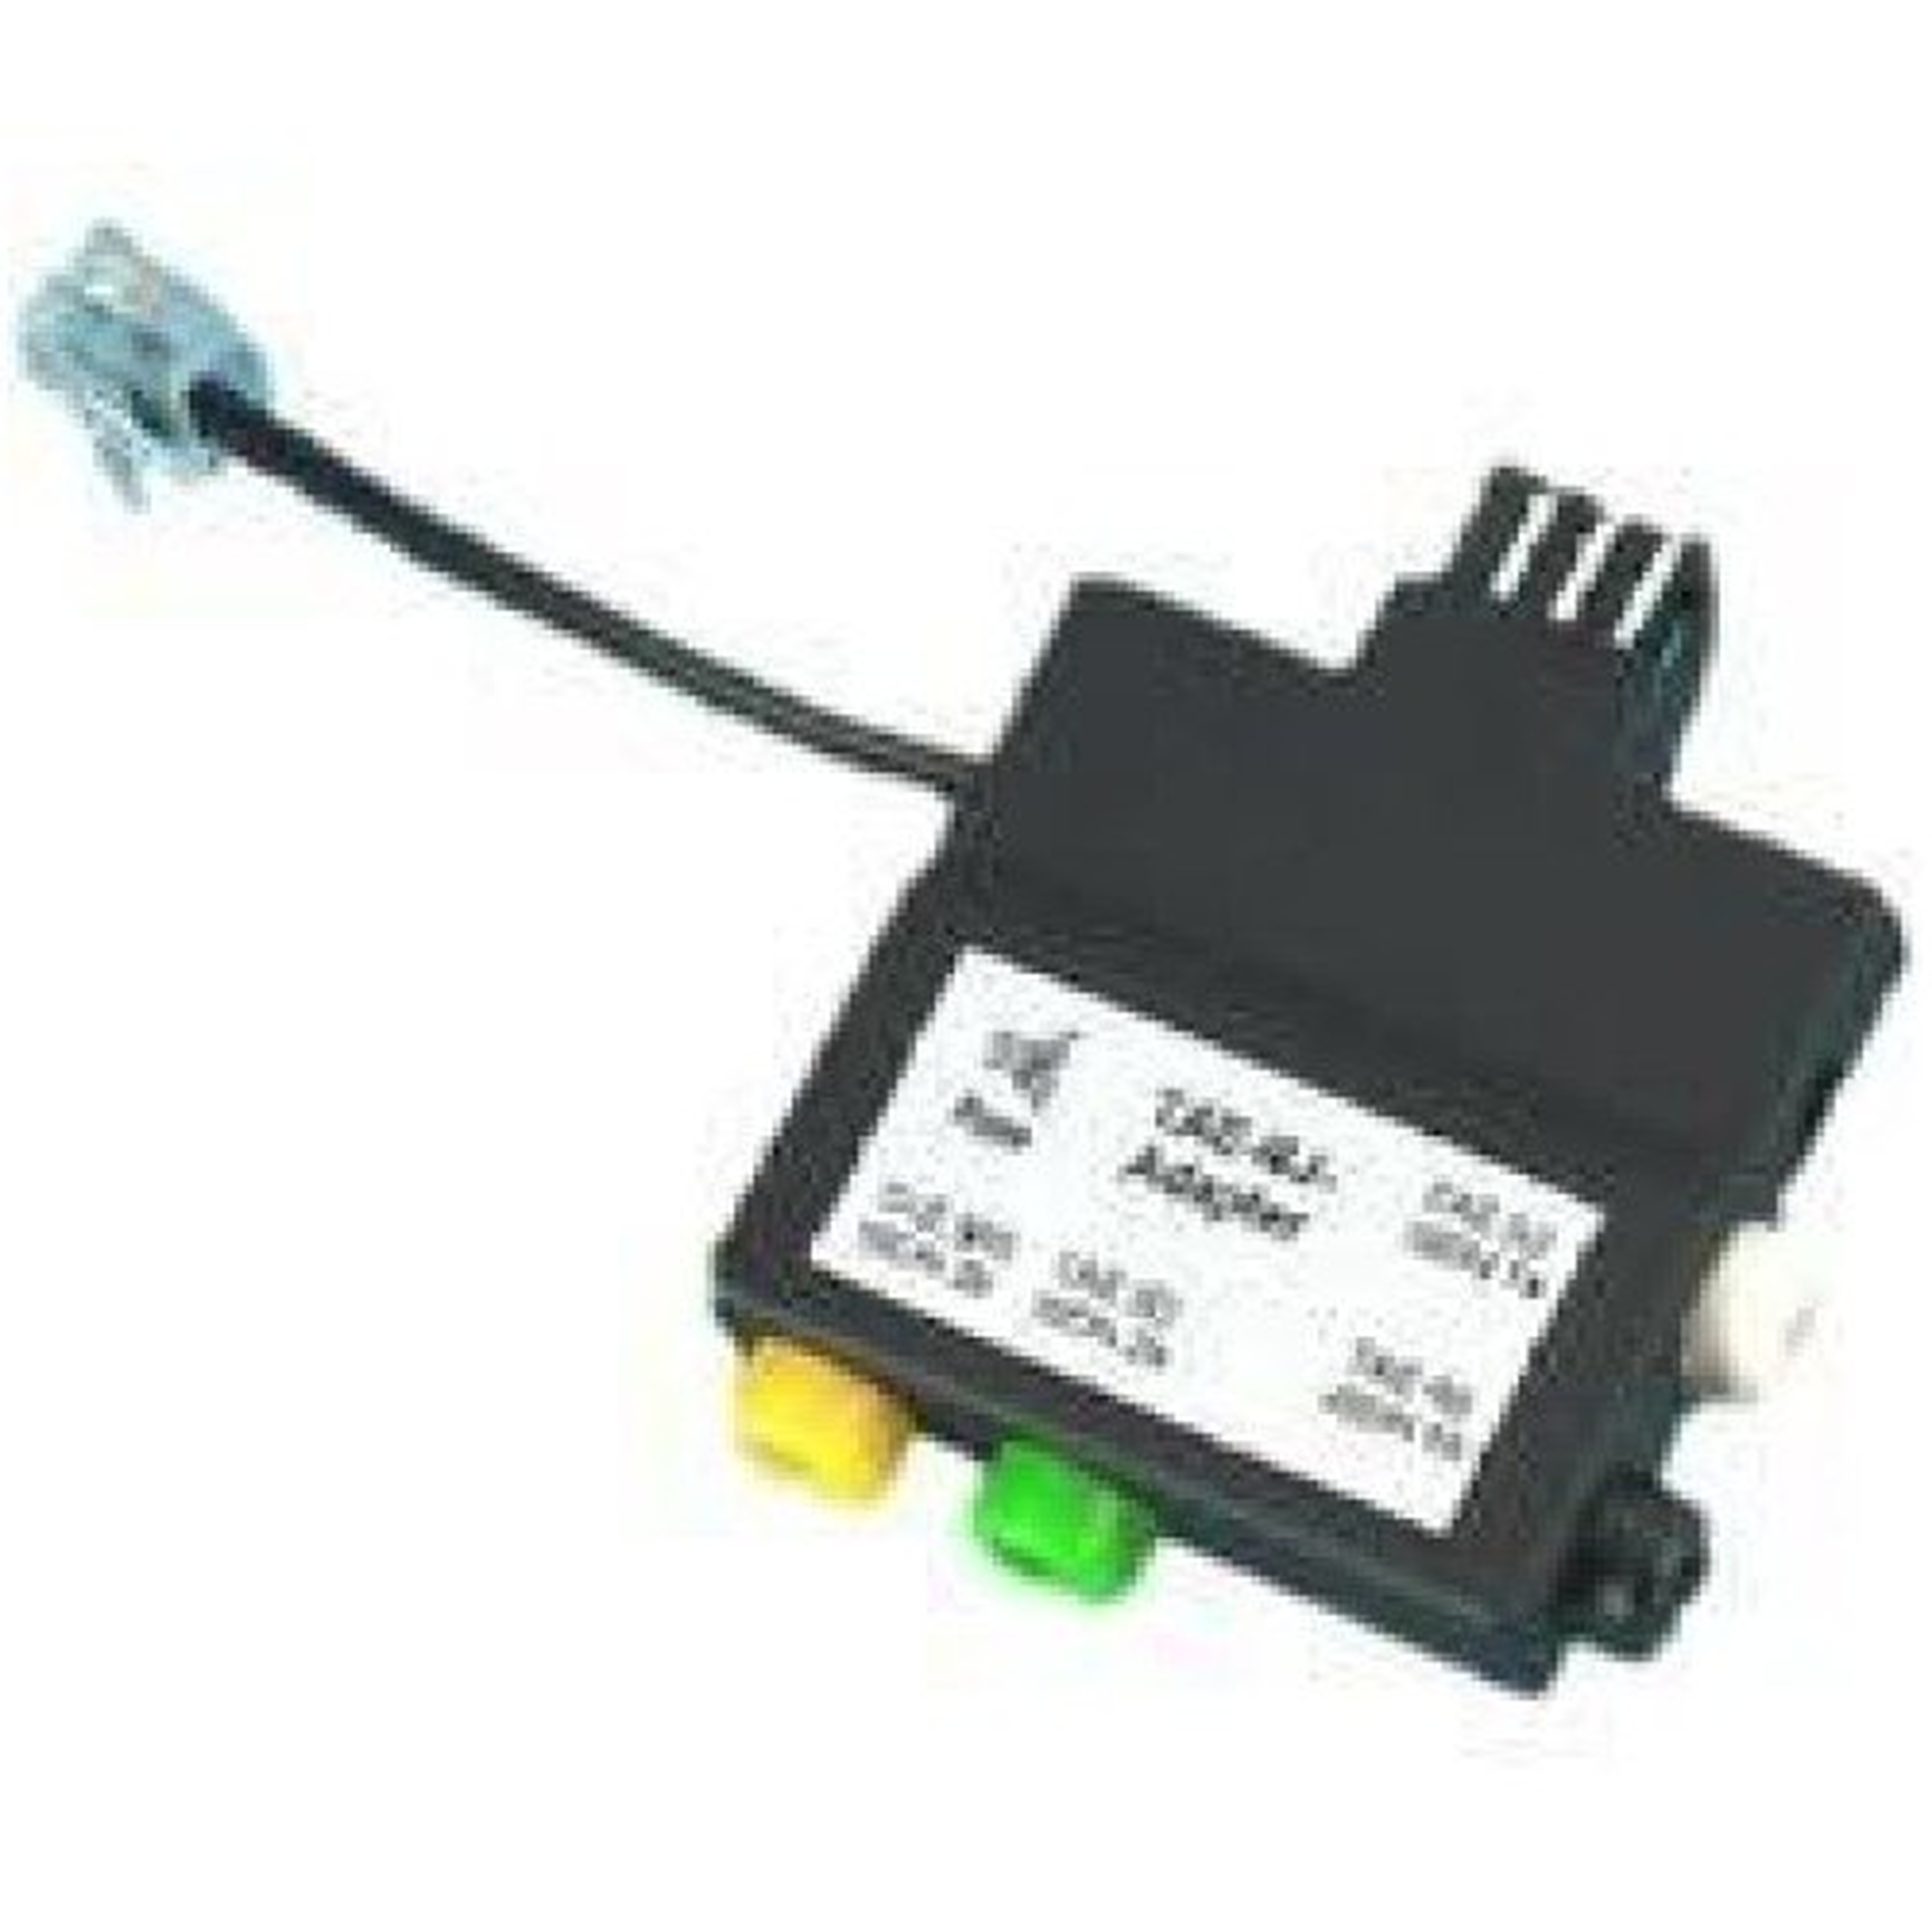 Rose TAE-RJ11-Adapter für PTS93i / PTS93-09